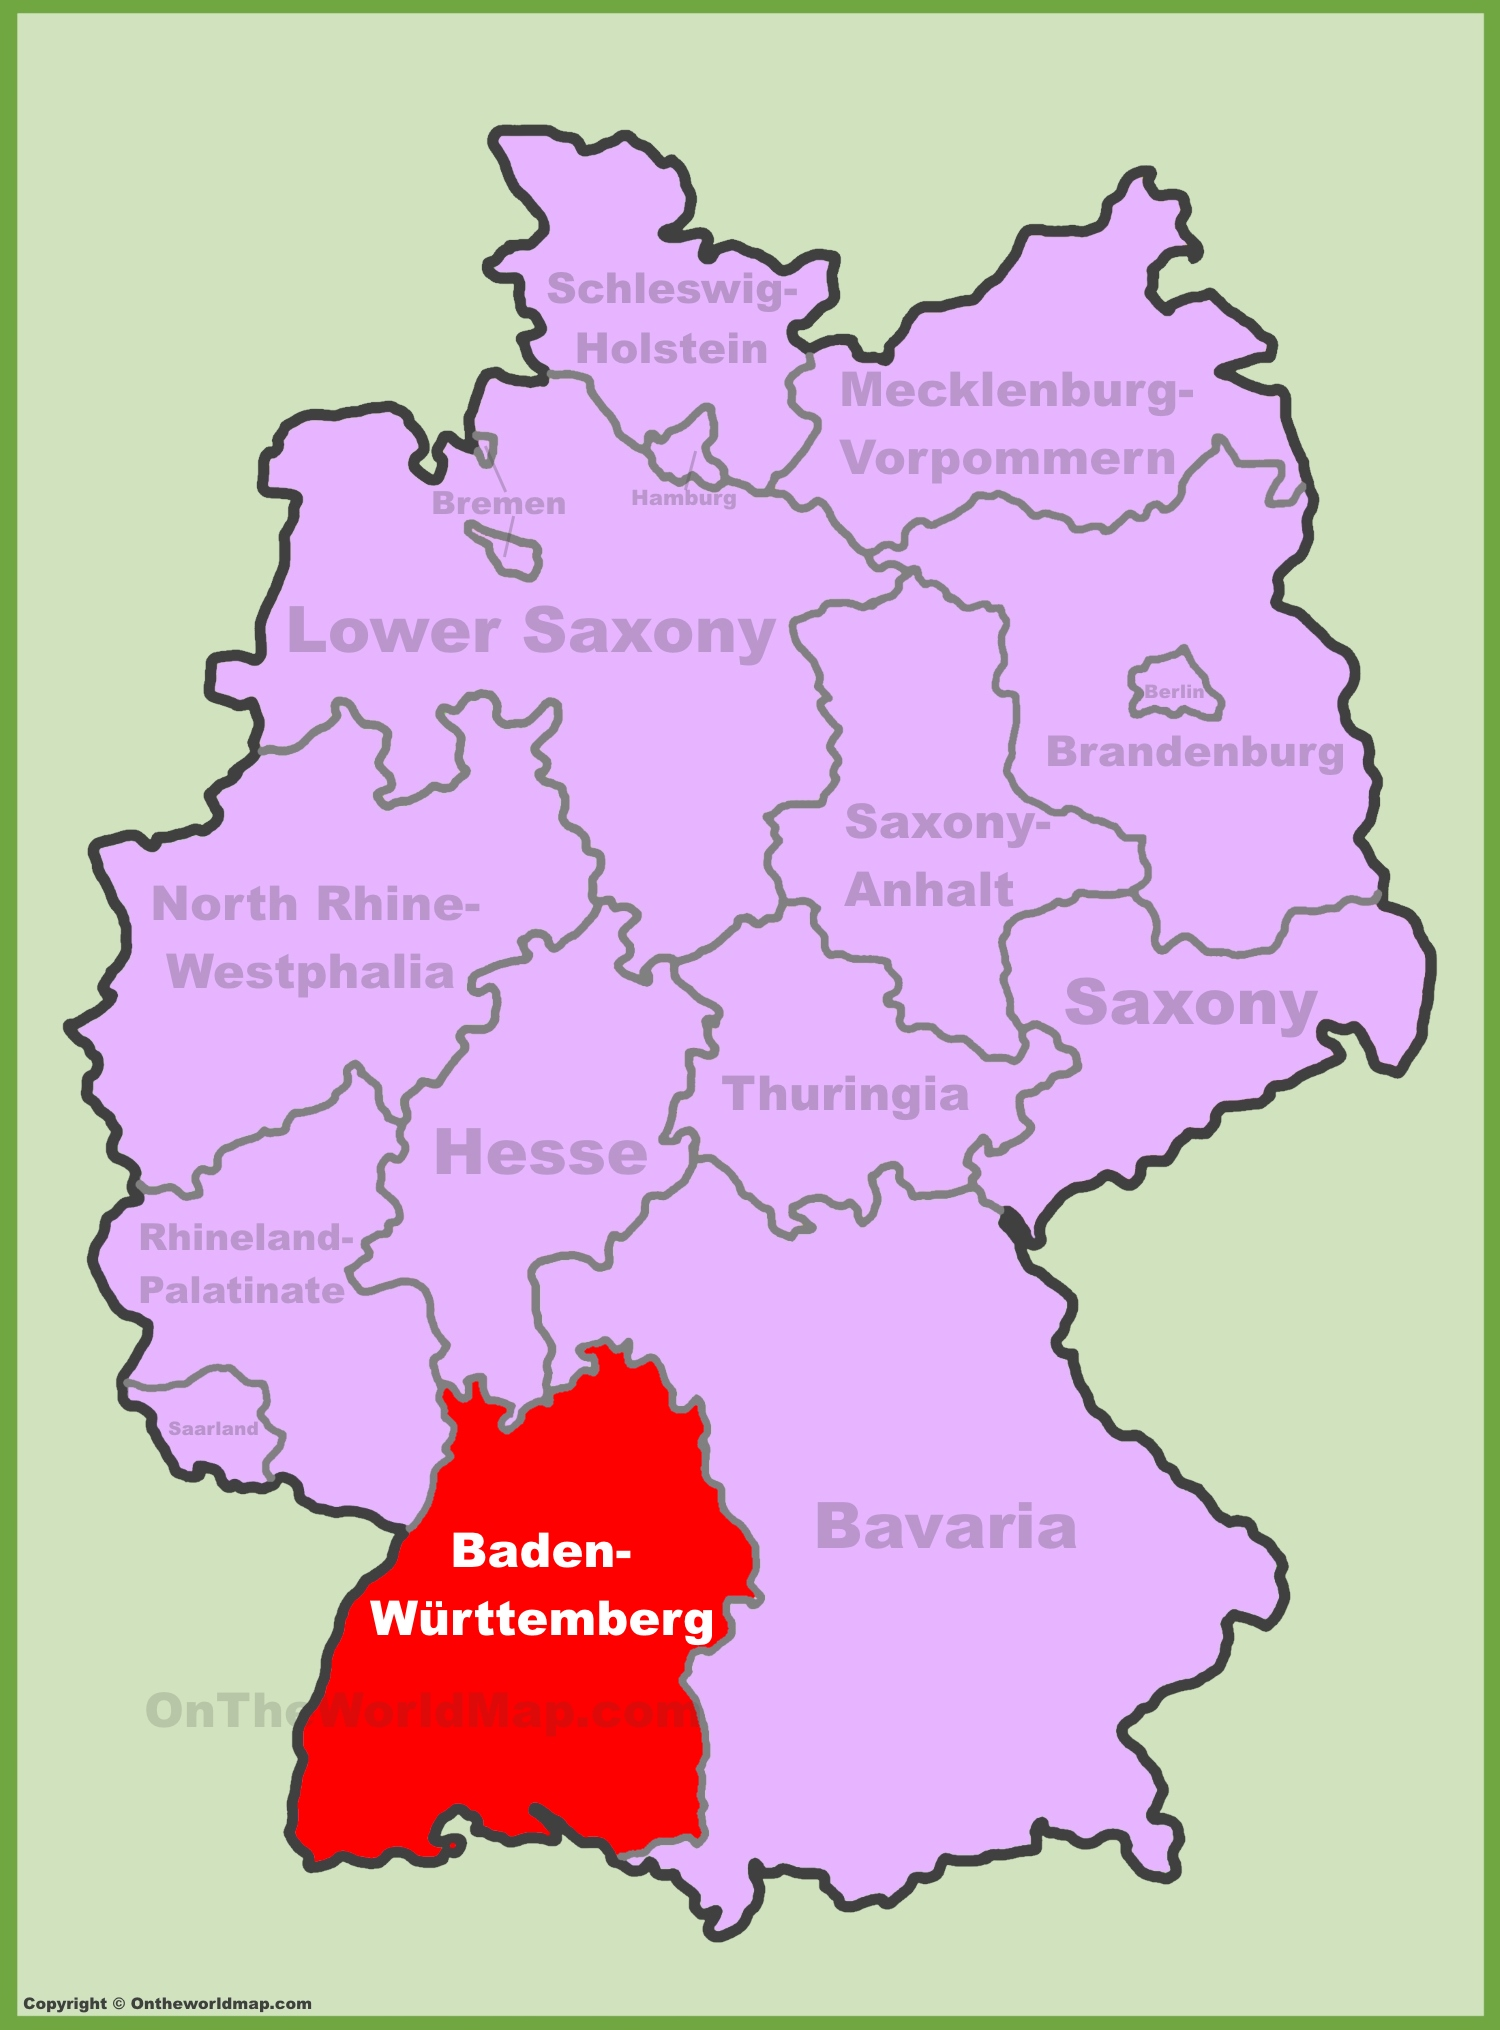 BadenWürttemberg Location On The Germany Map - Germany map location